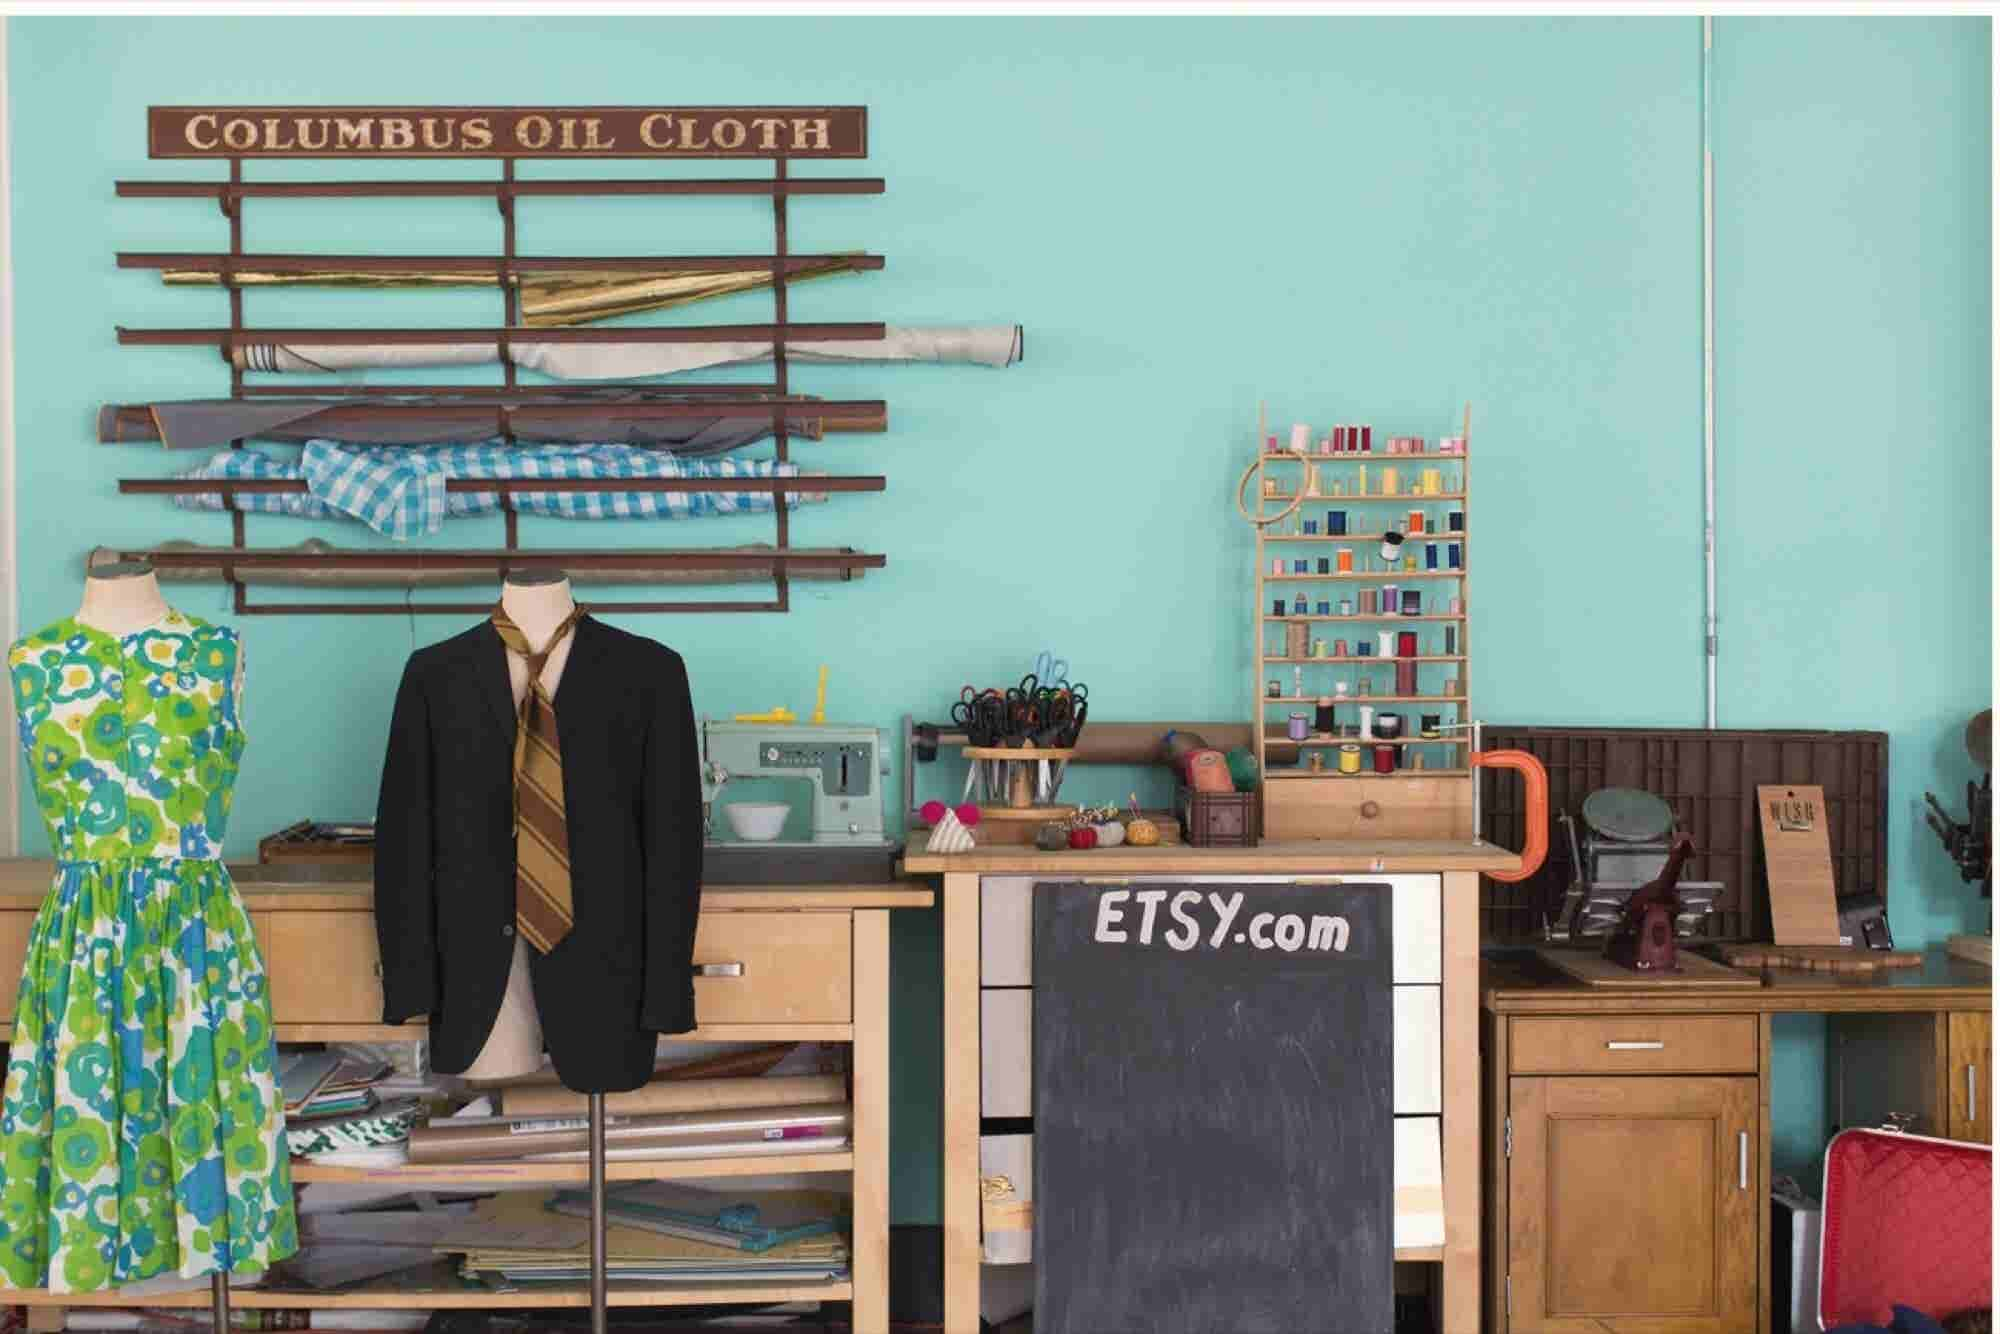 Can Etsy Make Money and Do Good at the Same Time?